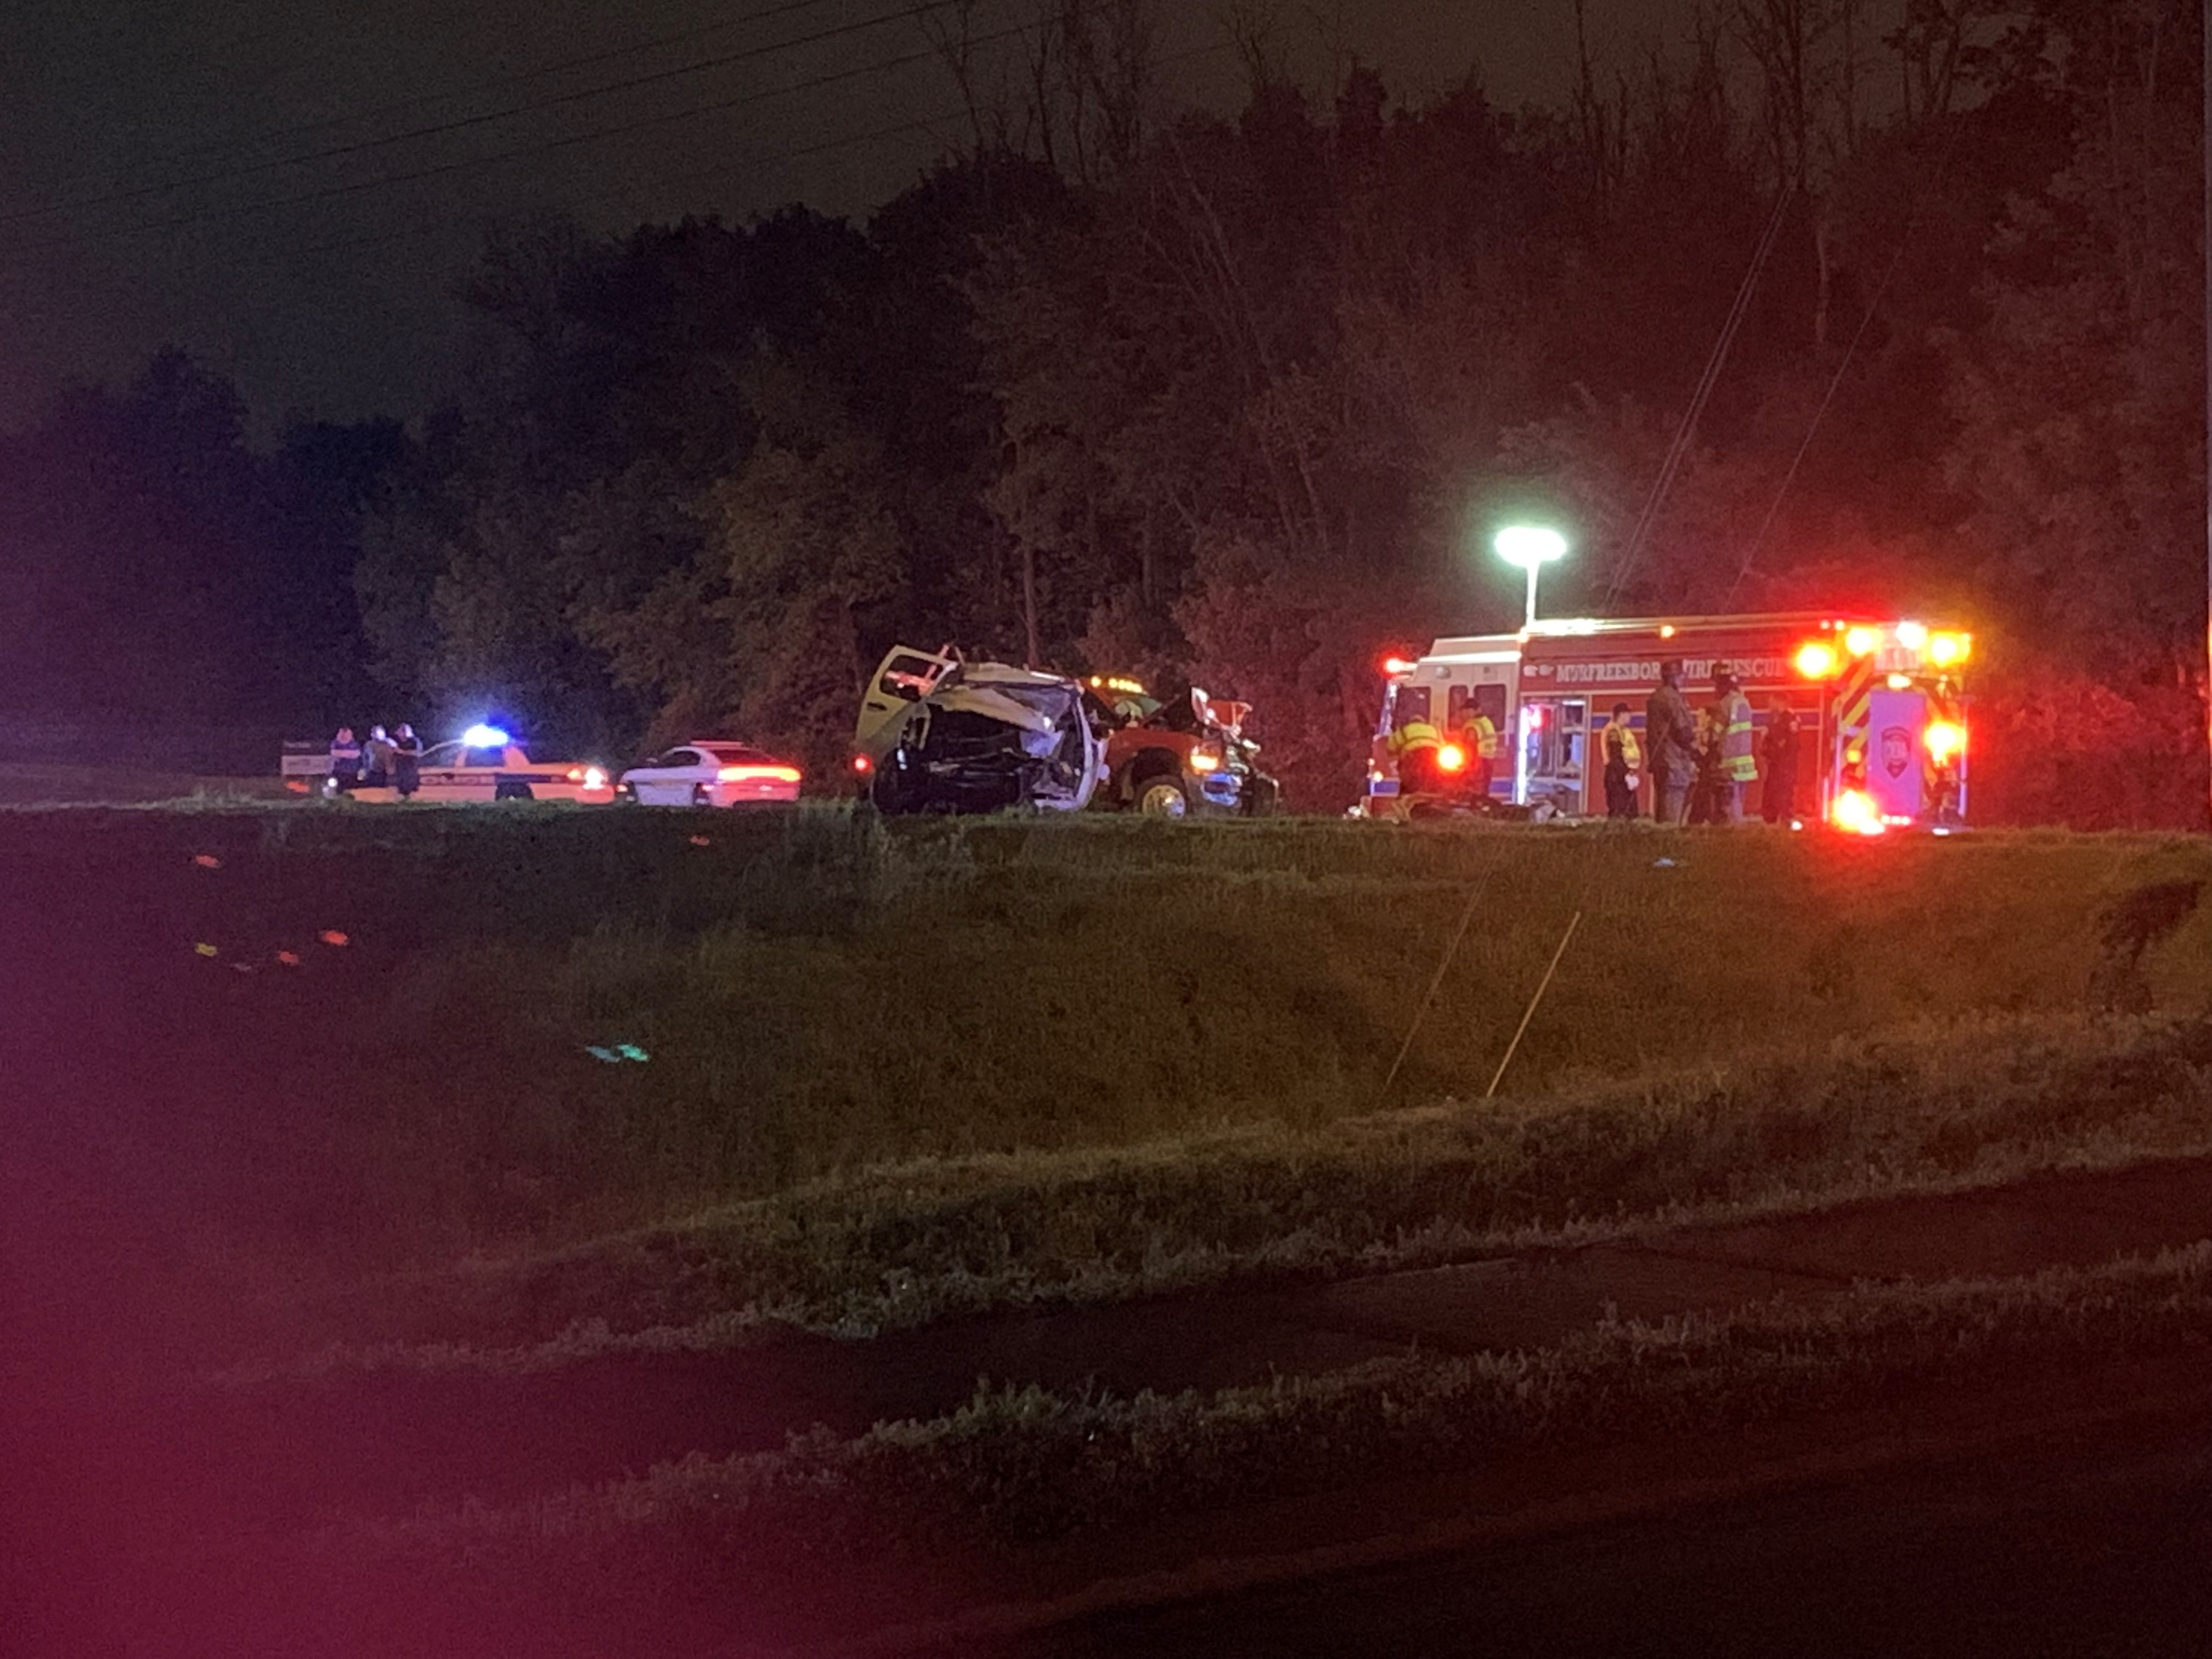 Members of the Murfreesboro Police Department (MPD) Fatal Accident Crash Team, or F.A.C.T., are investigating a serious head-on crash where a vehicle burst into flames, trapping the driver, just after 11:00 p.m. Saturday, April 25.